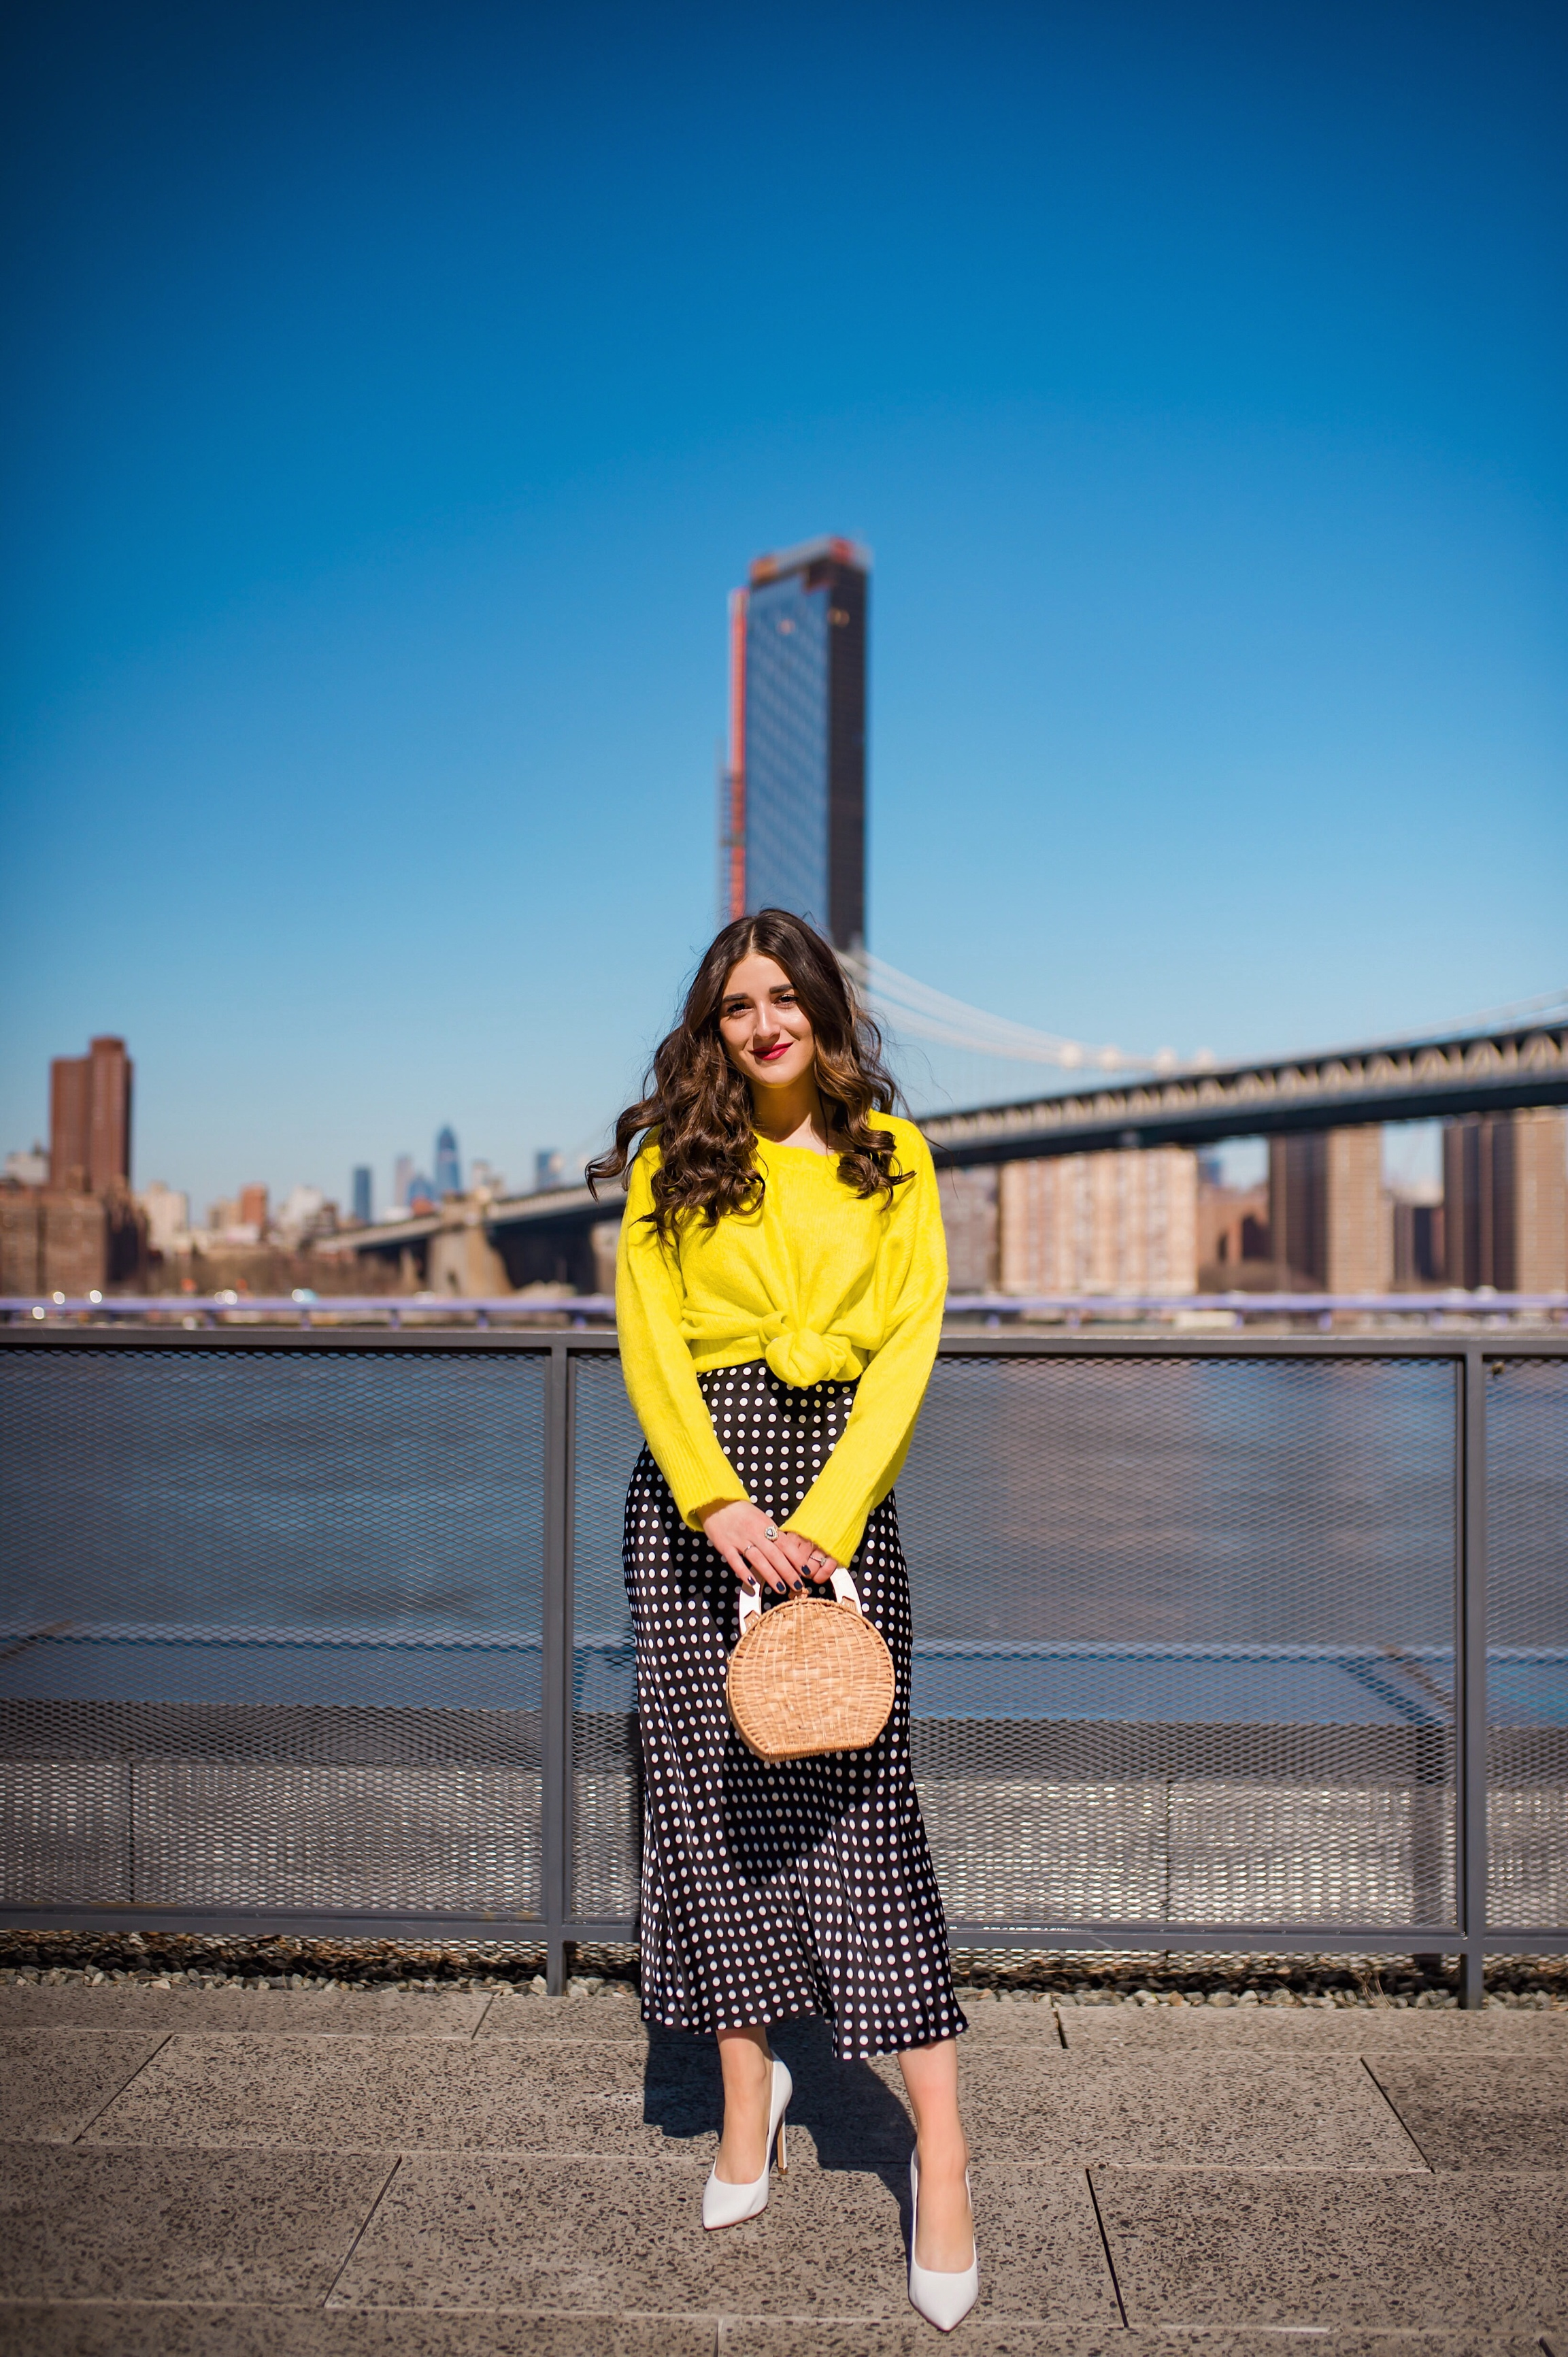 How I Wound Up With Boring White Dishes Navy Polka Dot Dress Neon Yellow Knotted Sweater Esther Santer Fashion Blog NYC Street Style Blogger Outfit OOTD Trendy Shopping Girl White Heels What How To Wear Brooklyn Bridge Laurel Creative Photoshoot Dumbo.JPG